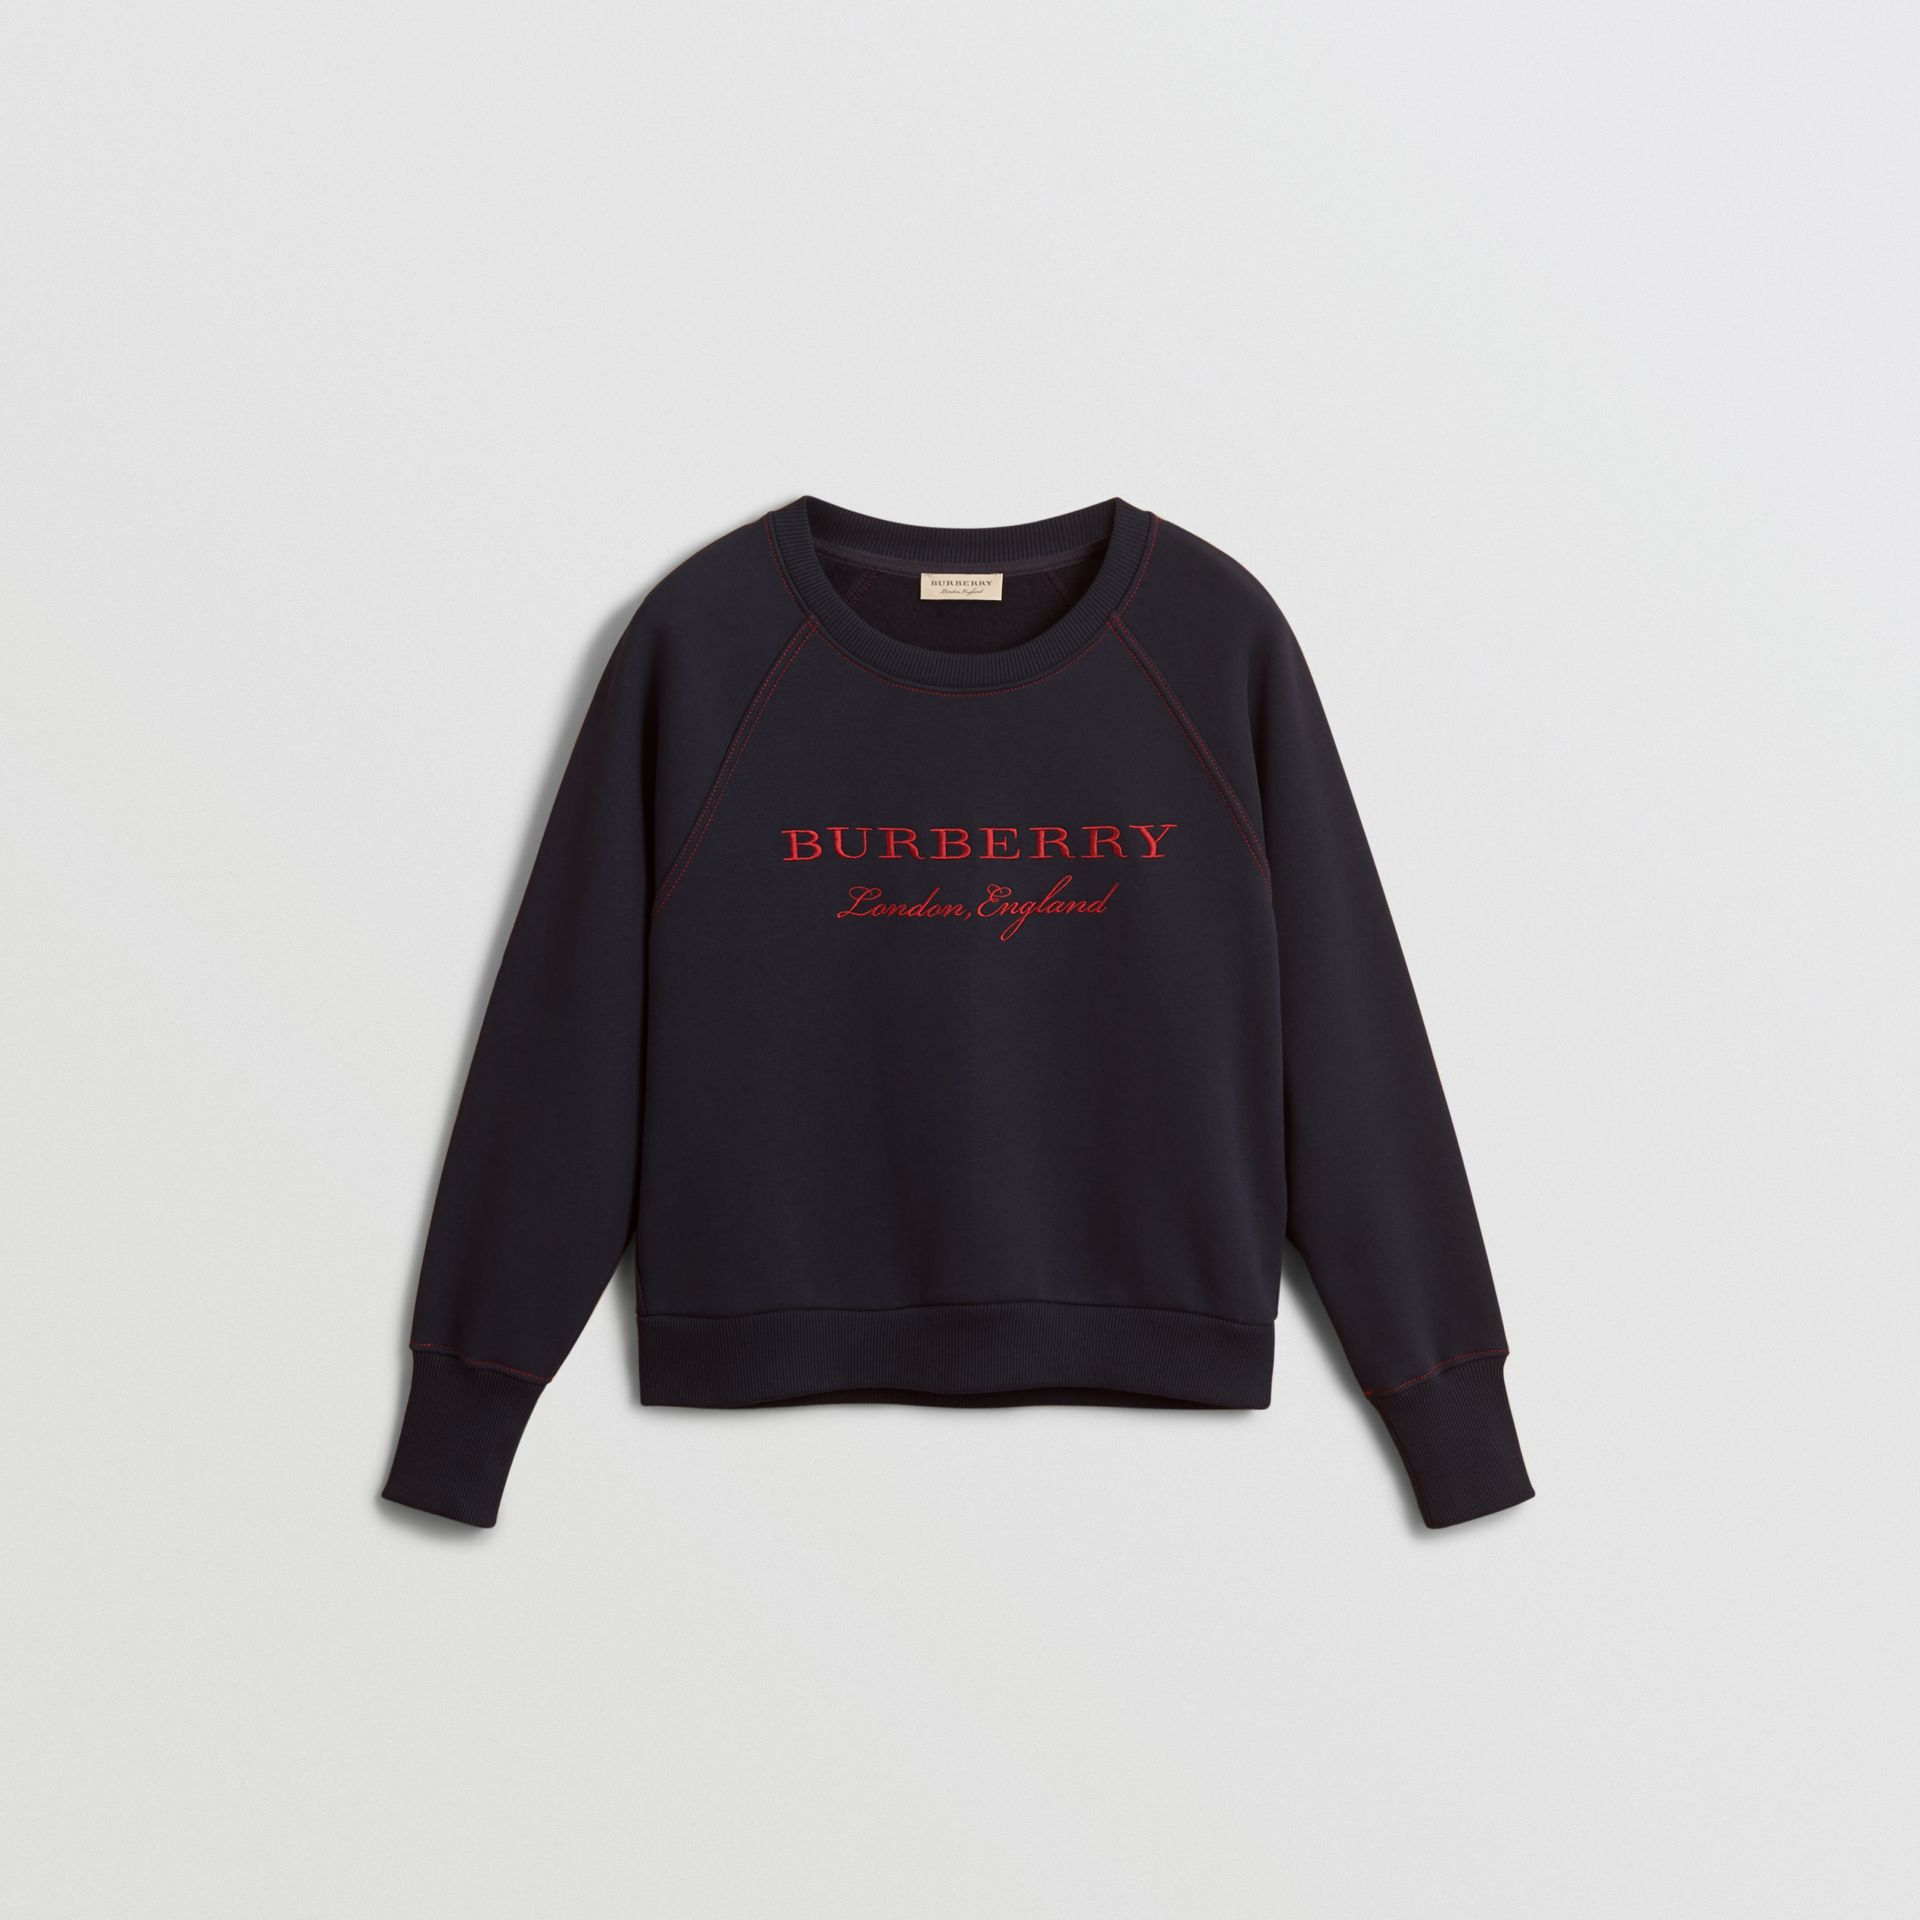 Embroidered Cotton Blend Jersey Sweatshirt in Navy - Women | Burberry - gallery image 3